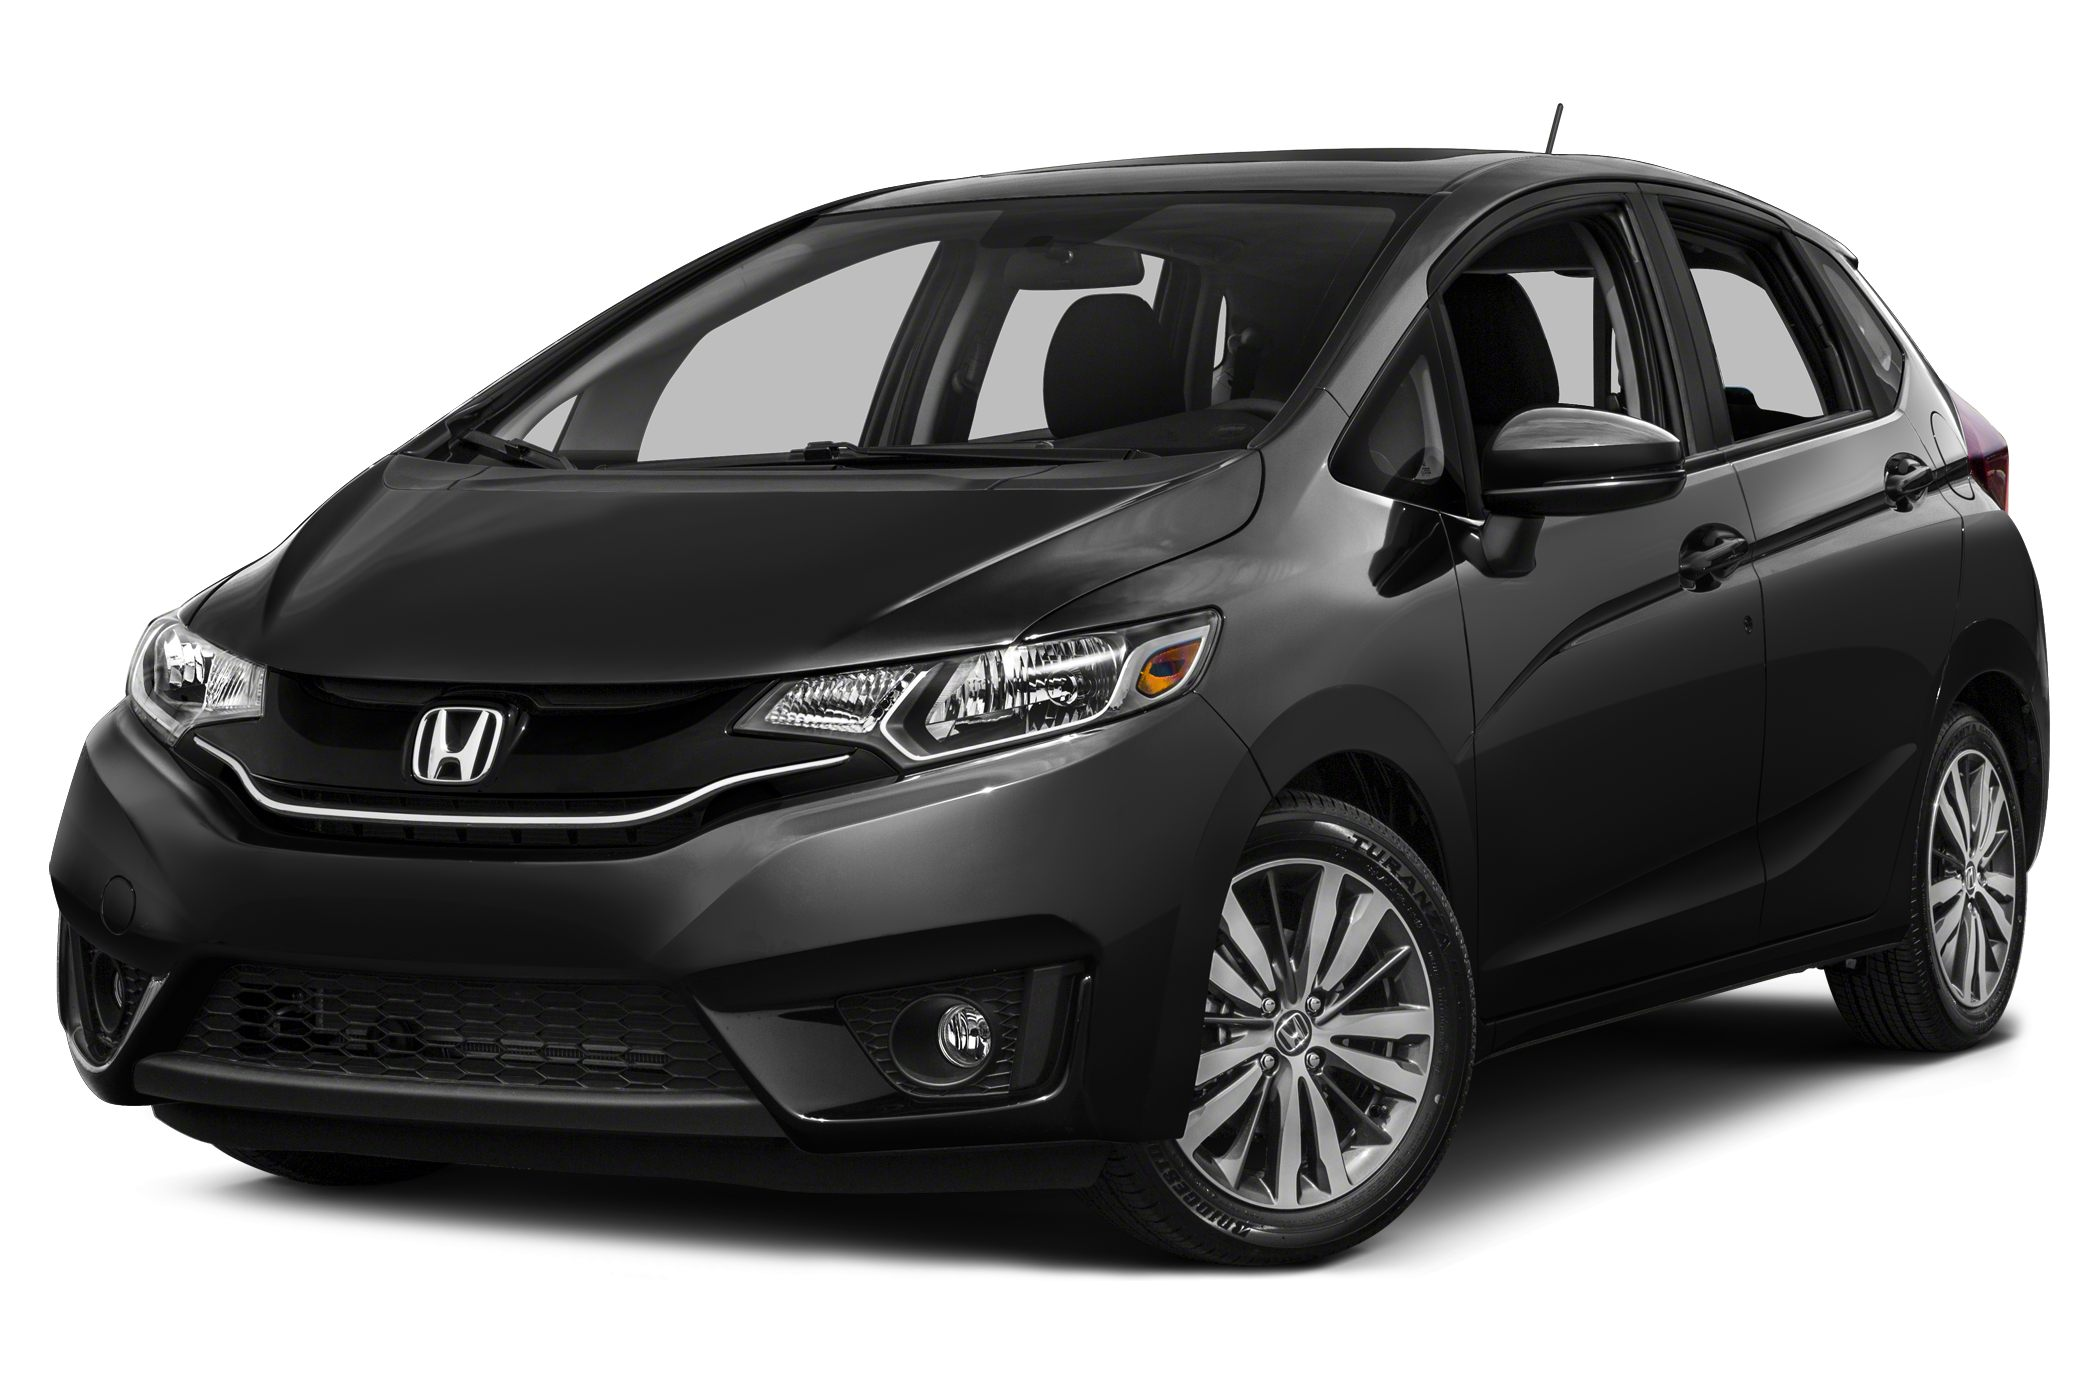 2015 Honda Fit EX Hatchback for sale in Greenville for $19,180 with 0 miles.